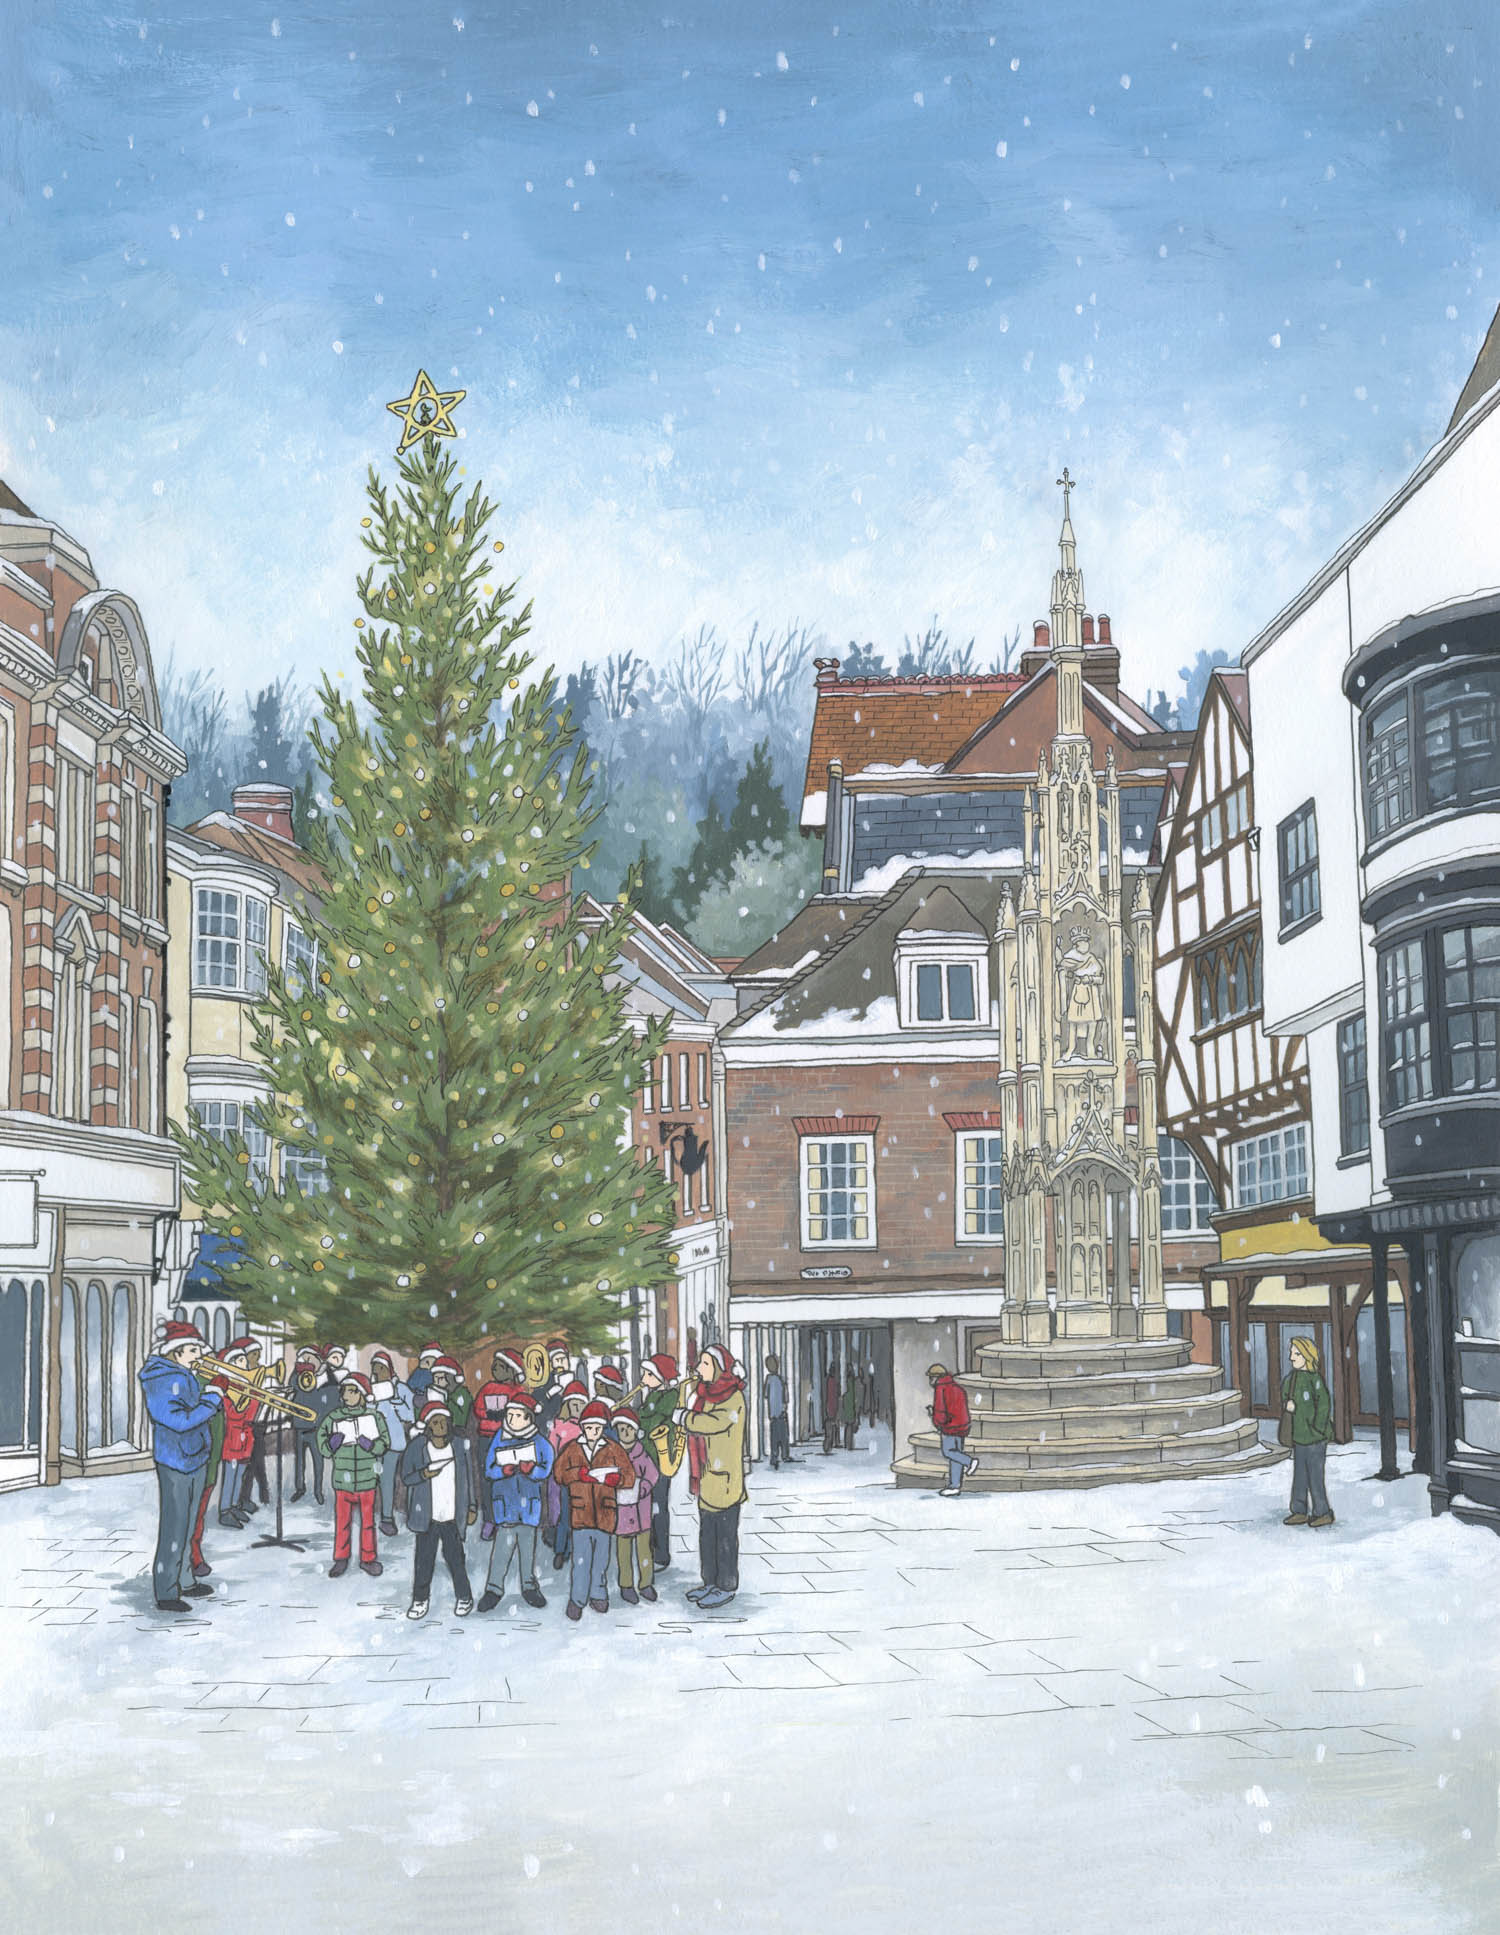 Carols Around the Christmas Tree - Illustration by Jonathan Chapman